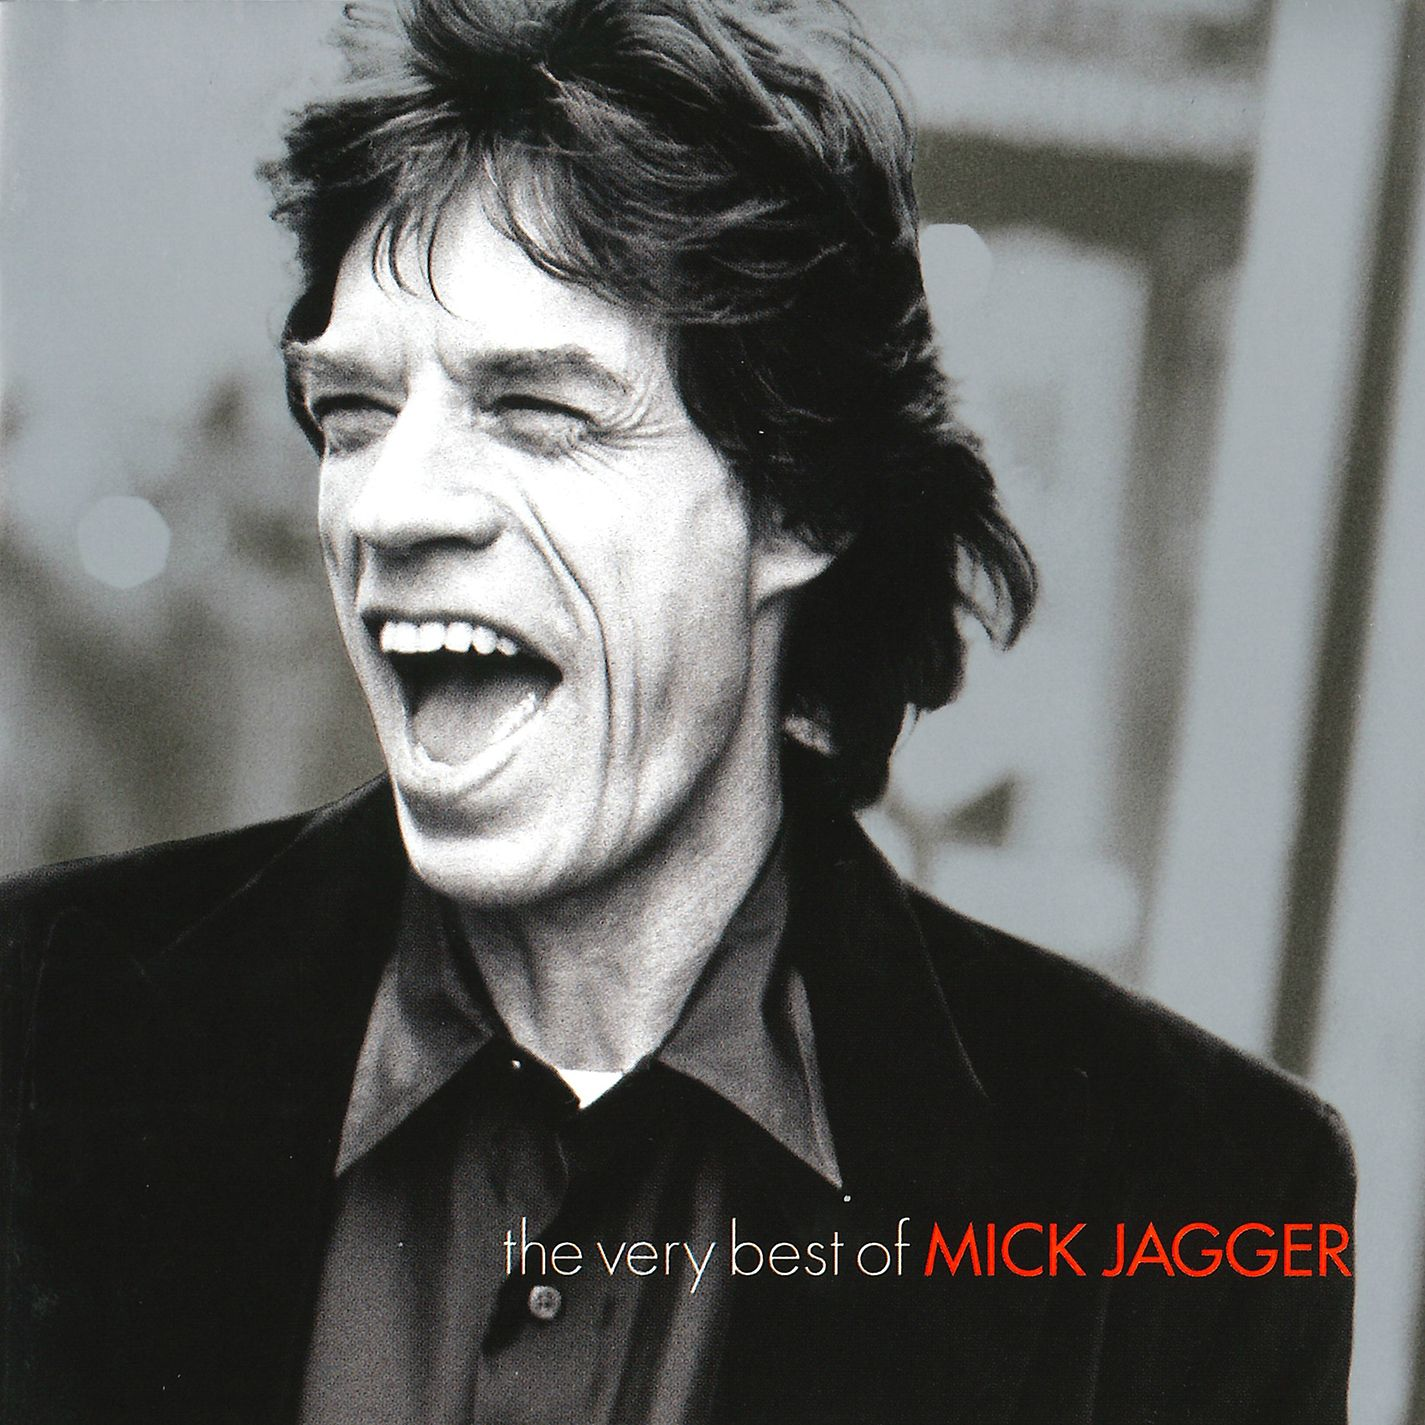 ON THIS DAY IN CLASSIC HITS MUSIC HISTORY ft. Mick Jagger